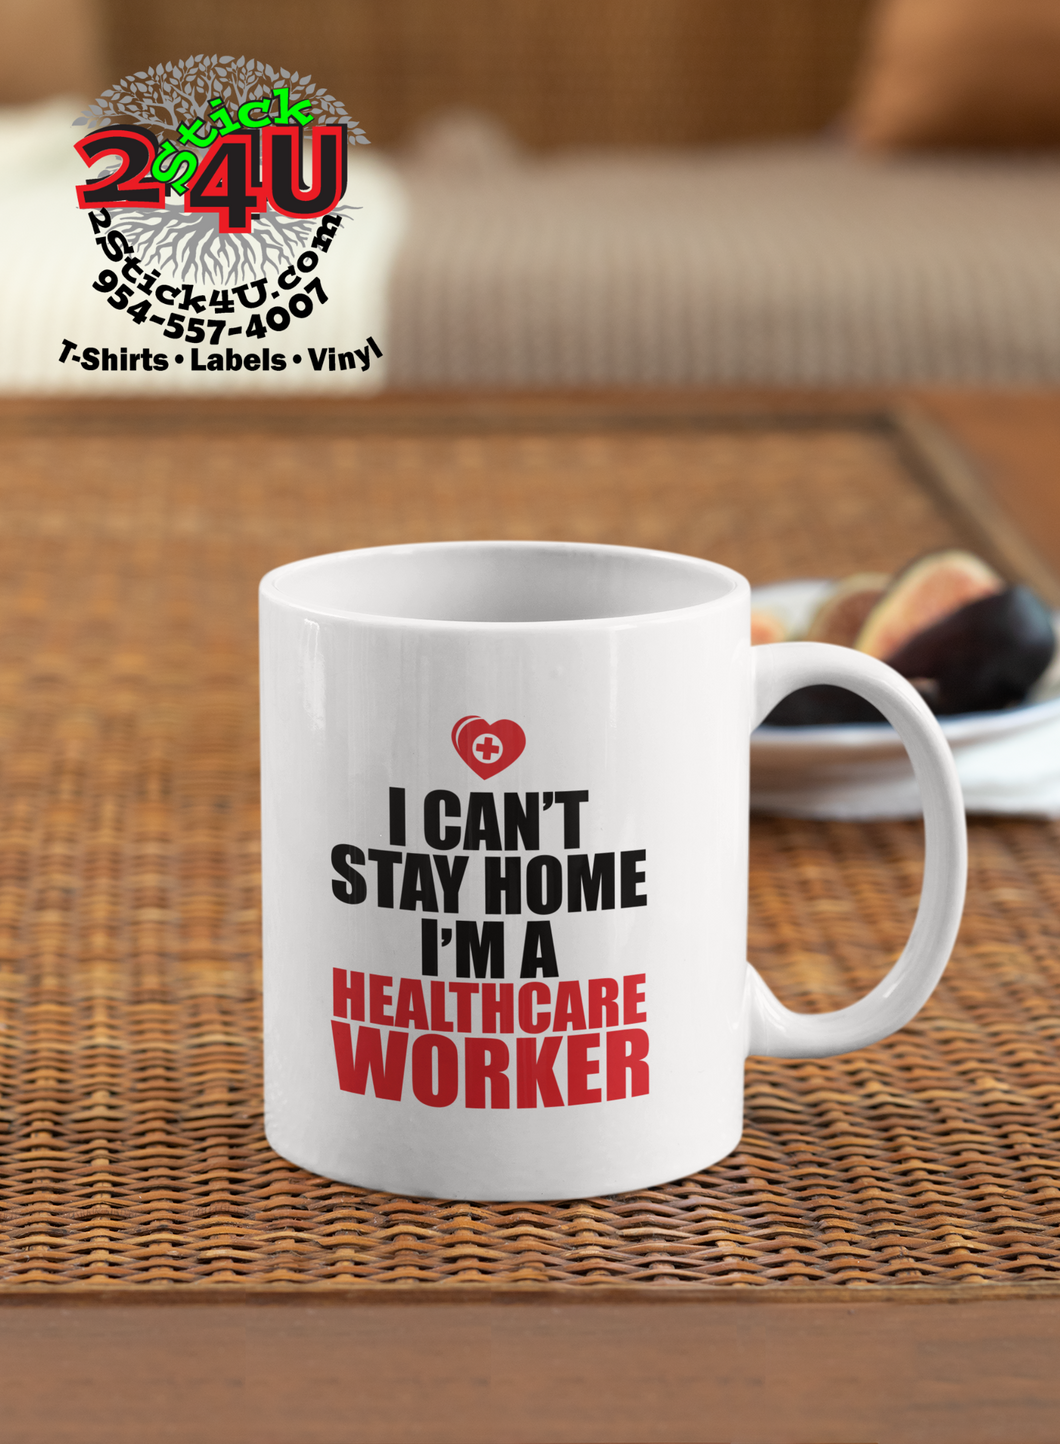 Nurse - Essential Worker Coffee Mug - Home of Buy 3, Get 1 Free. Long Lasting Custom Designed Coffee Mugs for Business and Pleasure. Perfect for Christmas, Housewarming, Wedding Party gifts